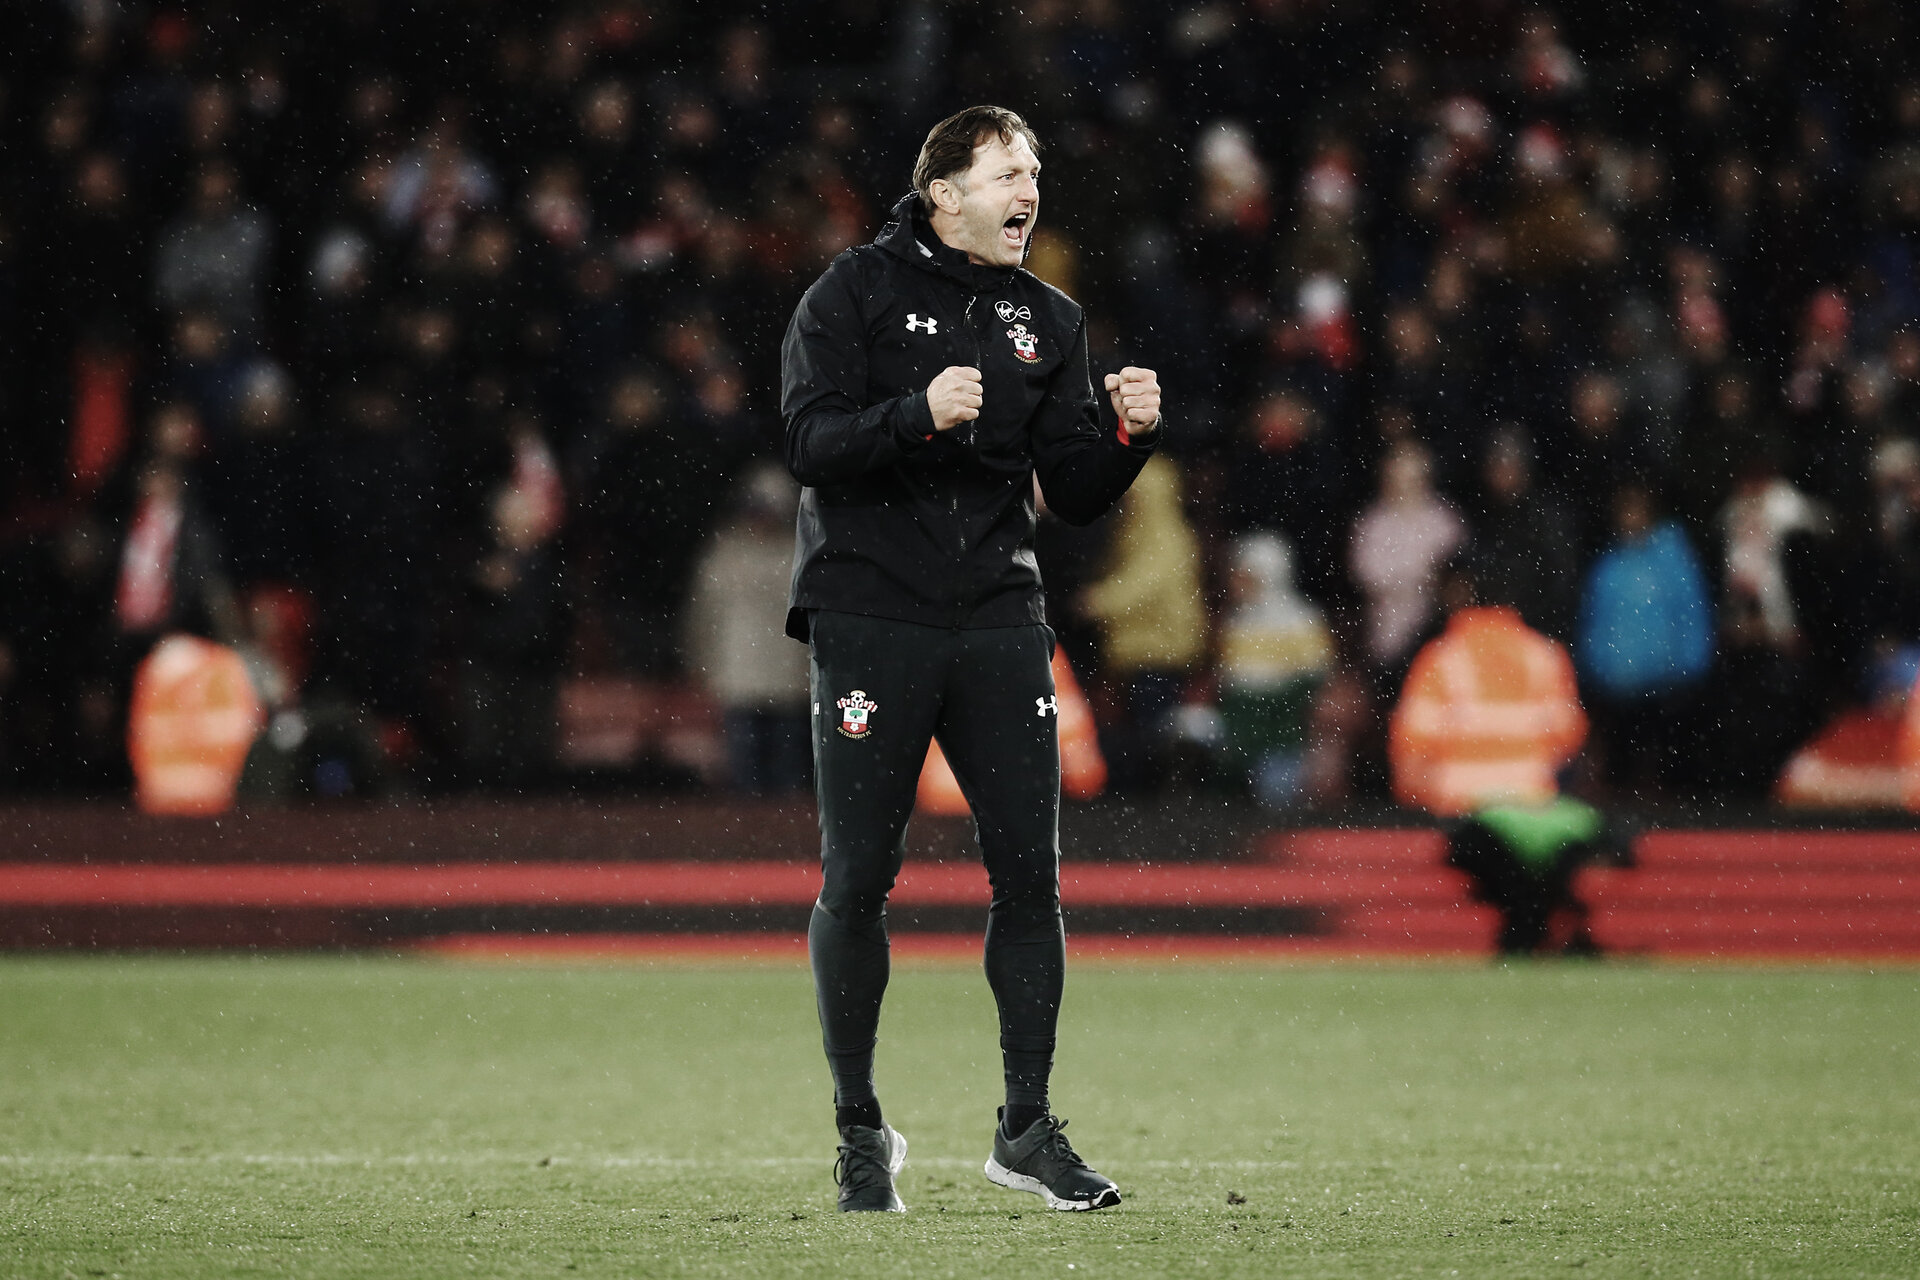 SOUTHAMPTON, ENGLAND - DECEMBER 16: Ralph Hasenhuttl during the Premier League match between Southampton FC and Arsenal FC at St Mary's Stadium on December 16, 2018 in Southampton, United Kingdom. (Photo by James Bridle - Southampton FC/Southampton FC via Getty Images)